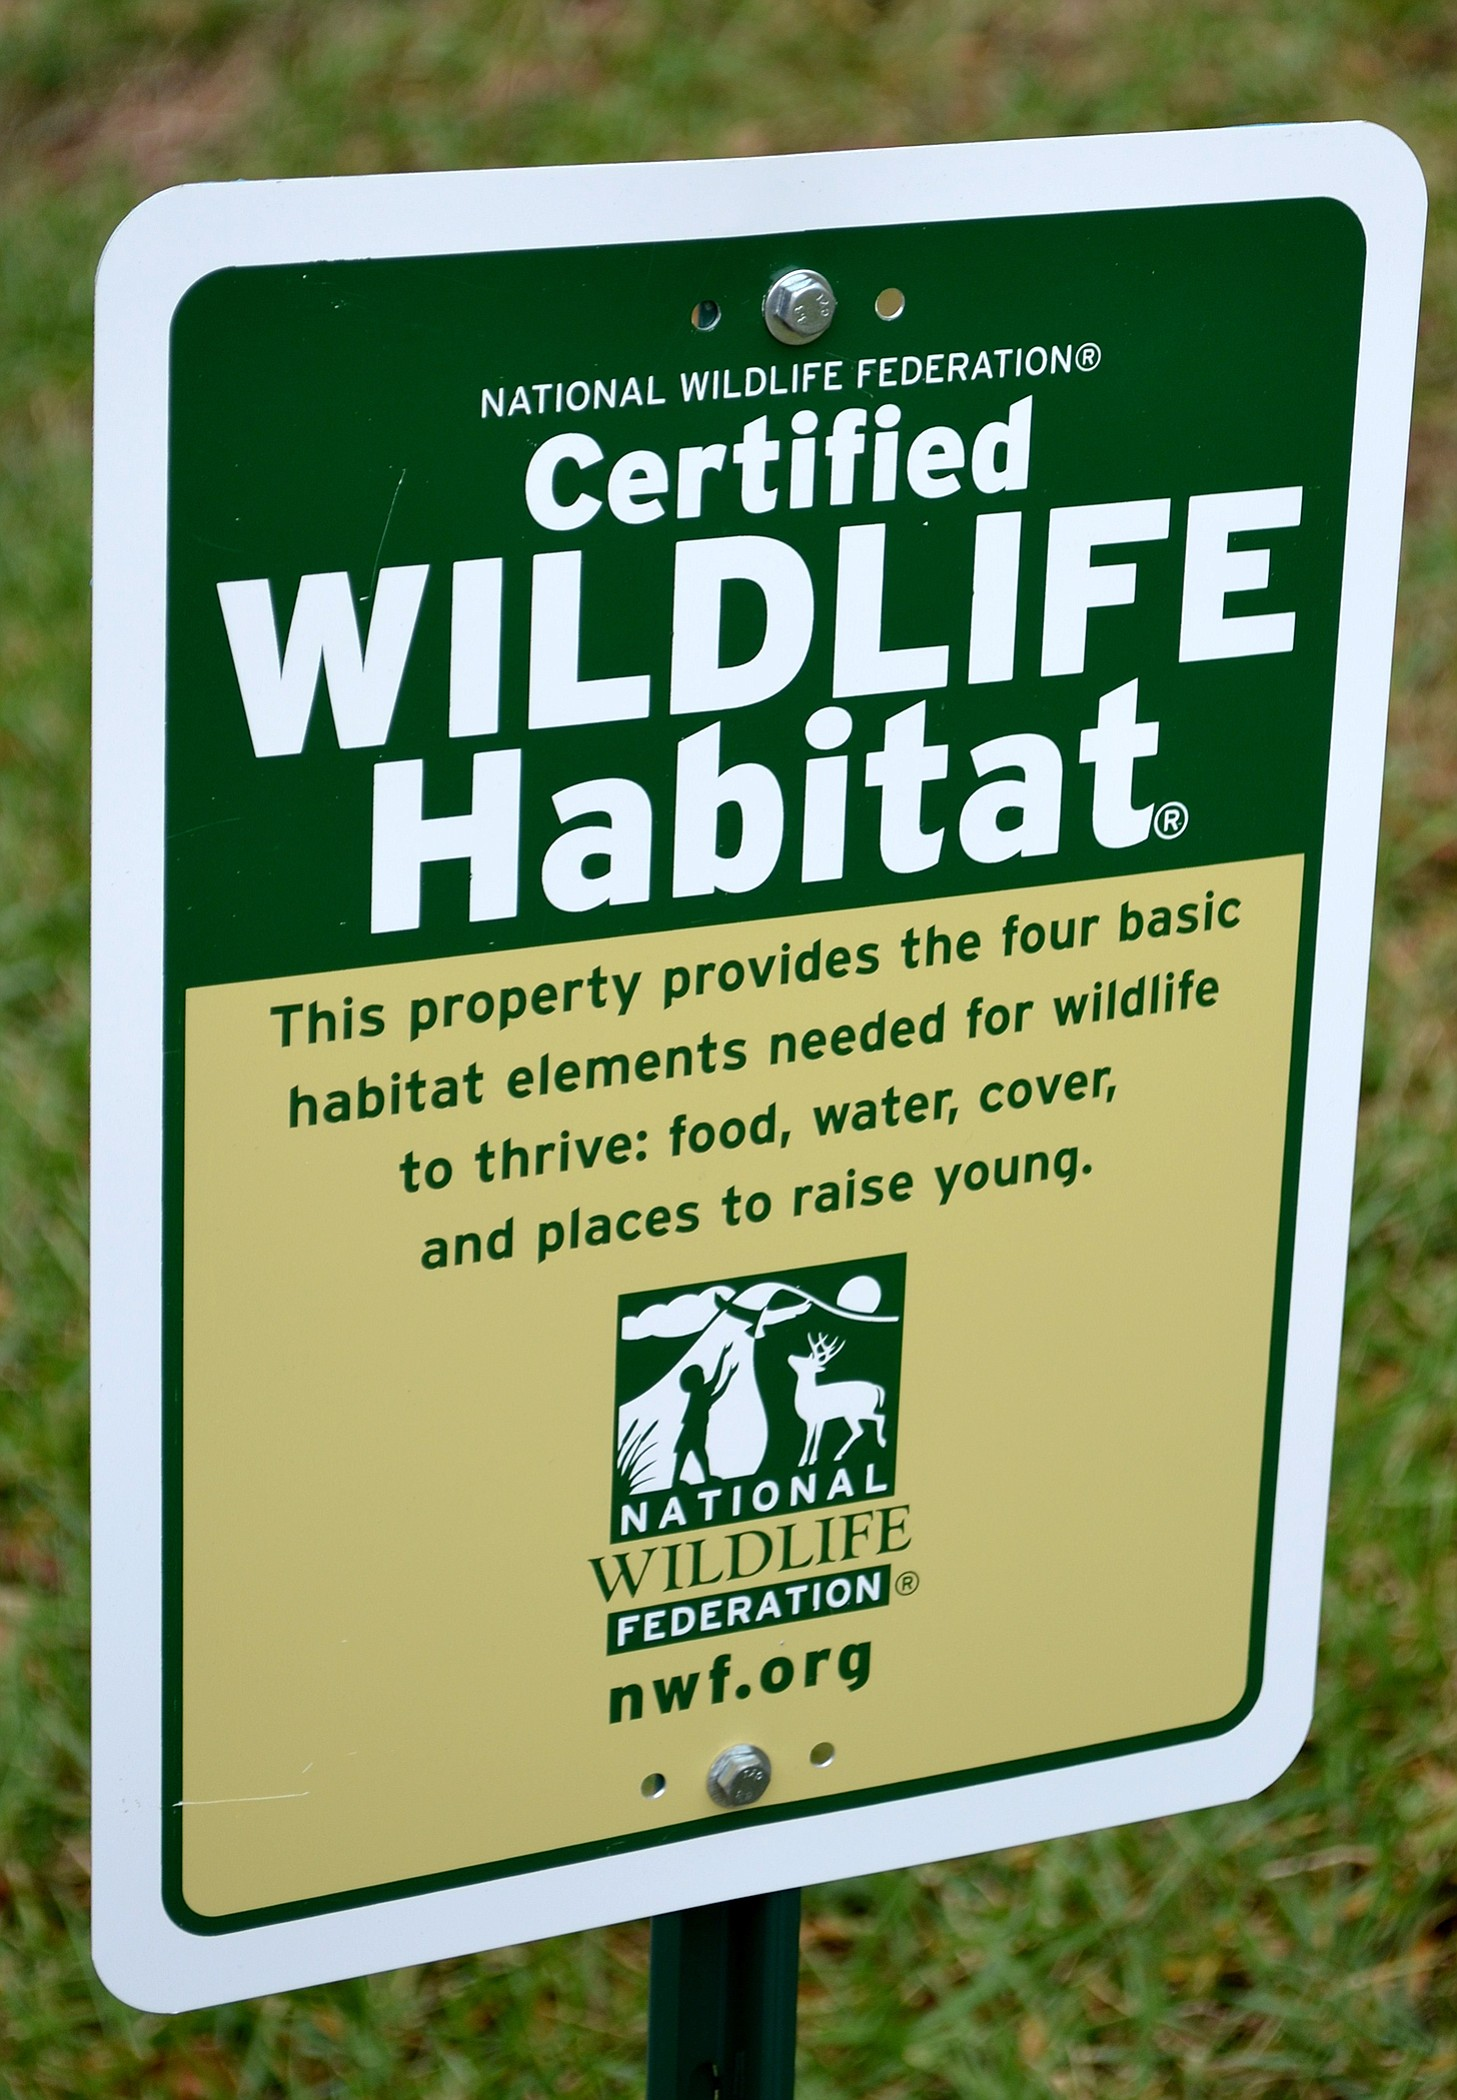 A sign on the grounds of St. Francis of Assisi Catholic Church in Triangle, Va., shown in 2013, identifies it as a certified wildlife habitat.